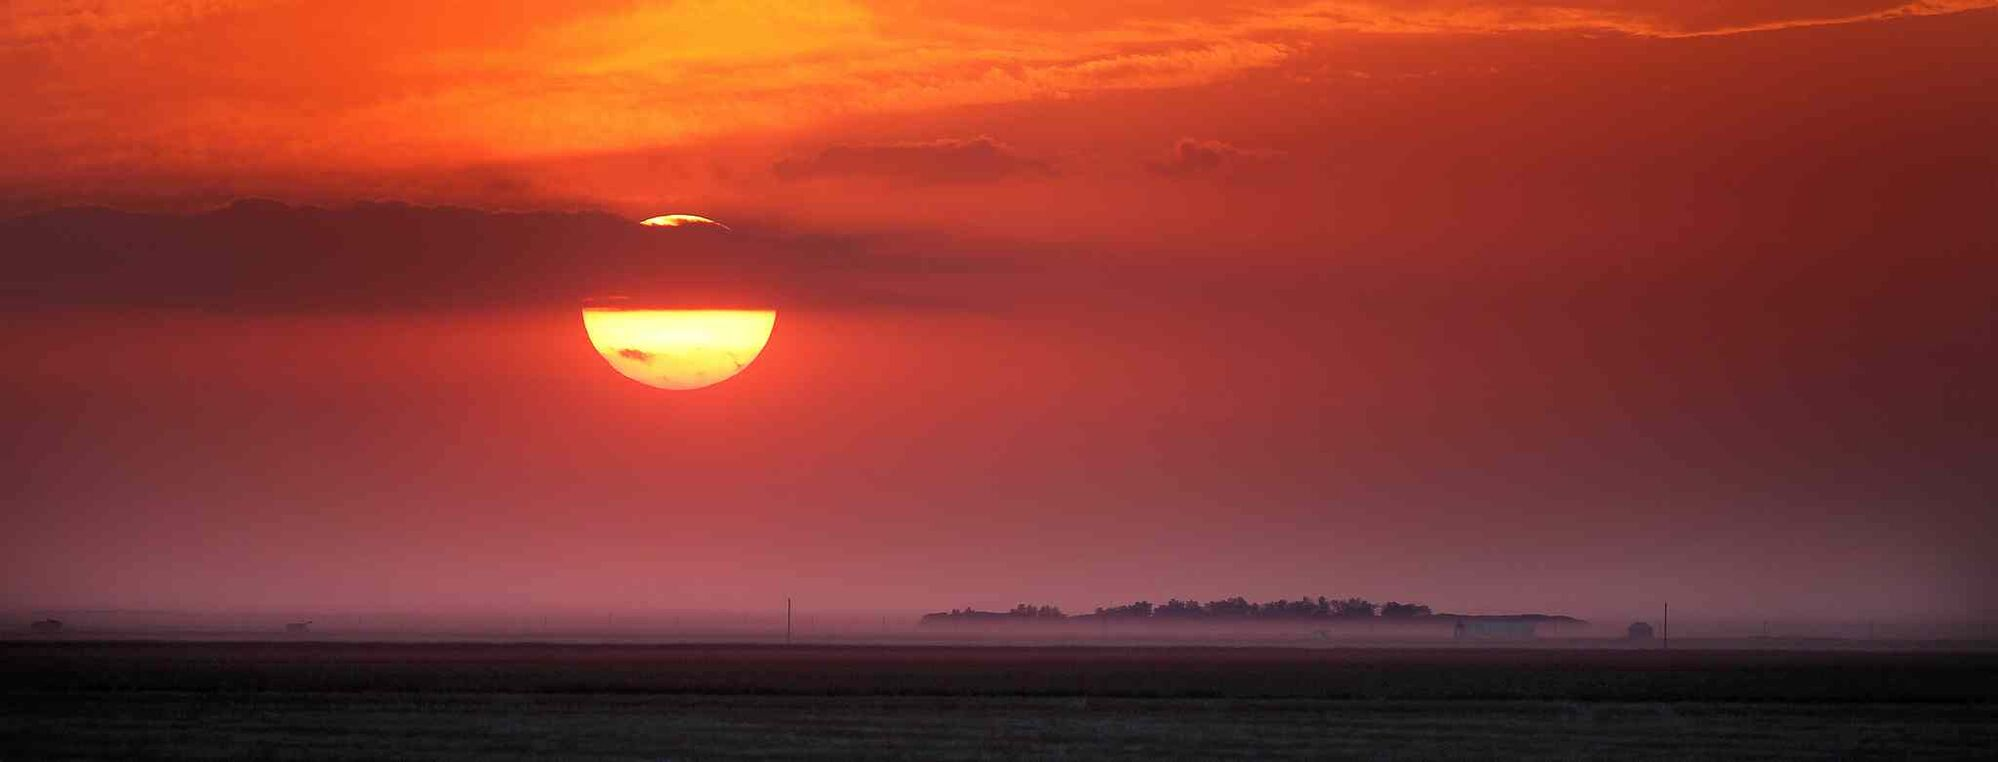 The sun eases into the western horizon, glowing red through the dust of the fall harvest in the Red River Valley.